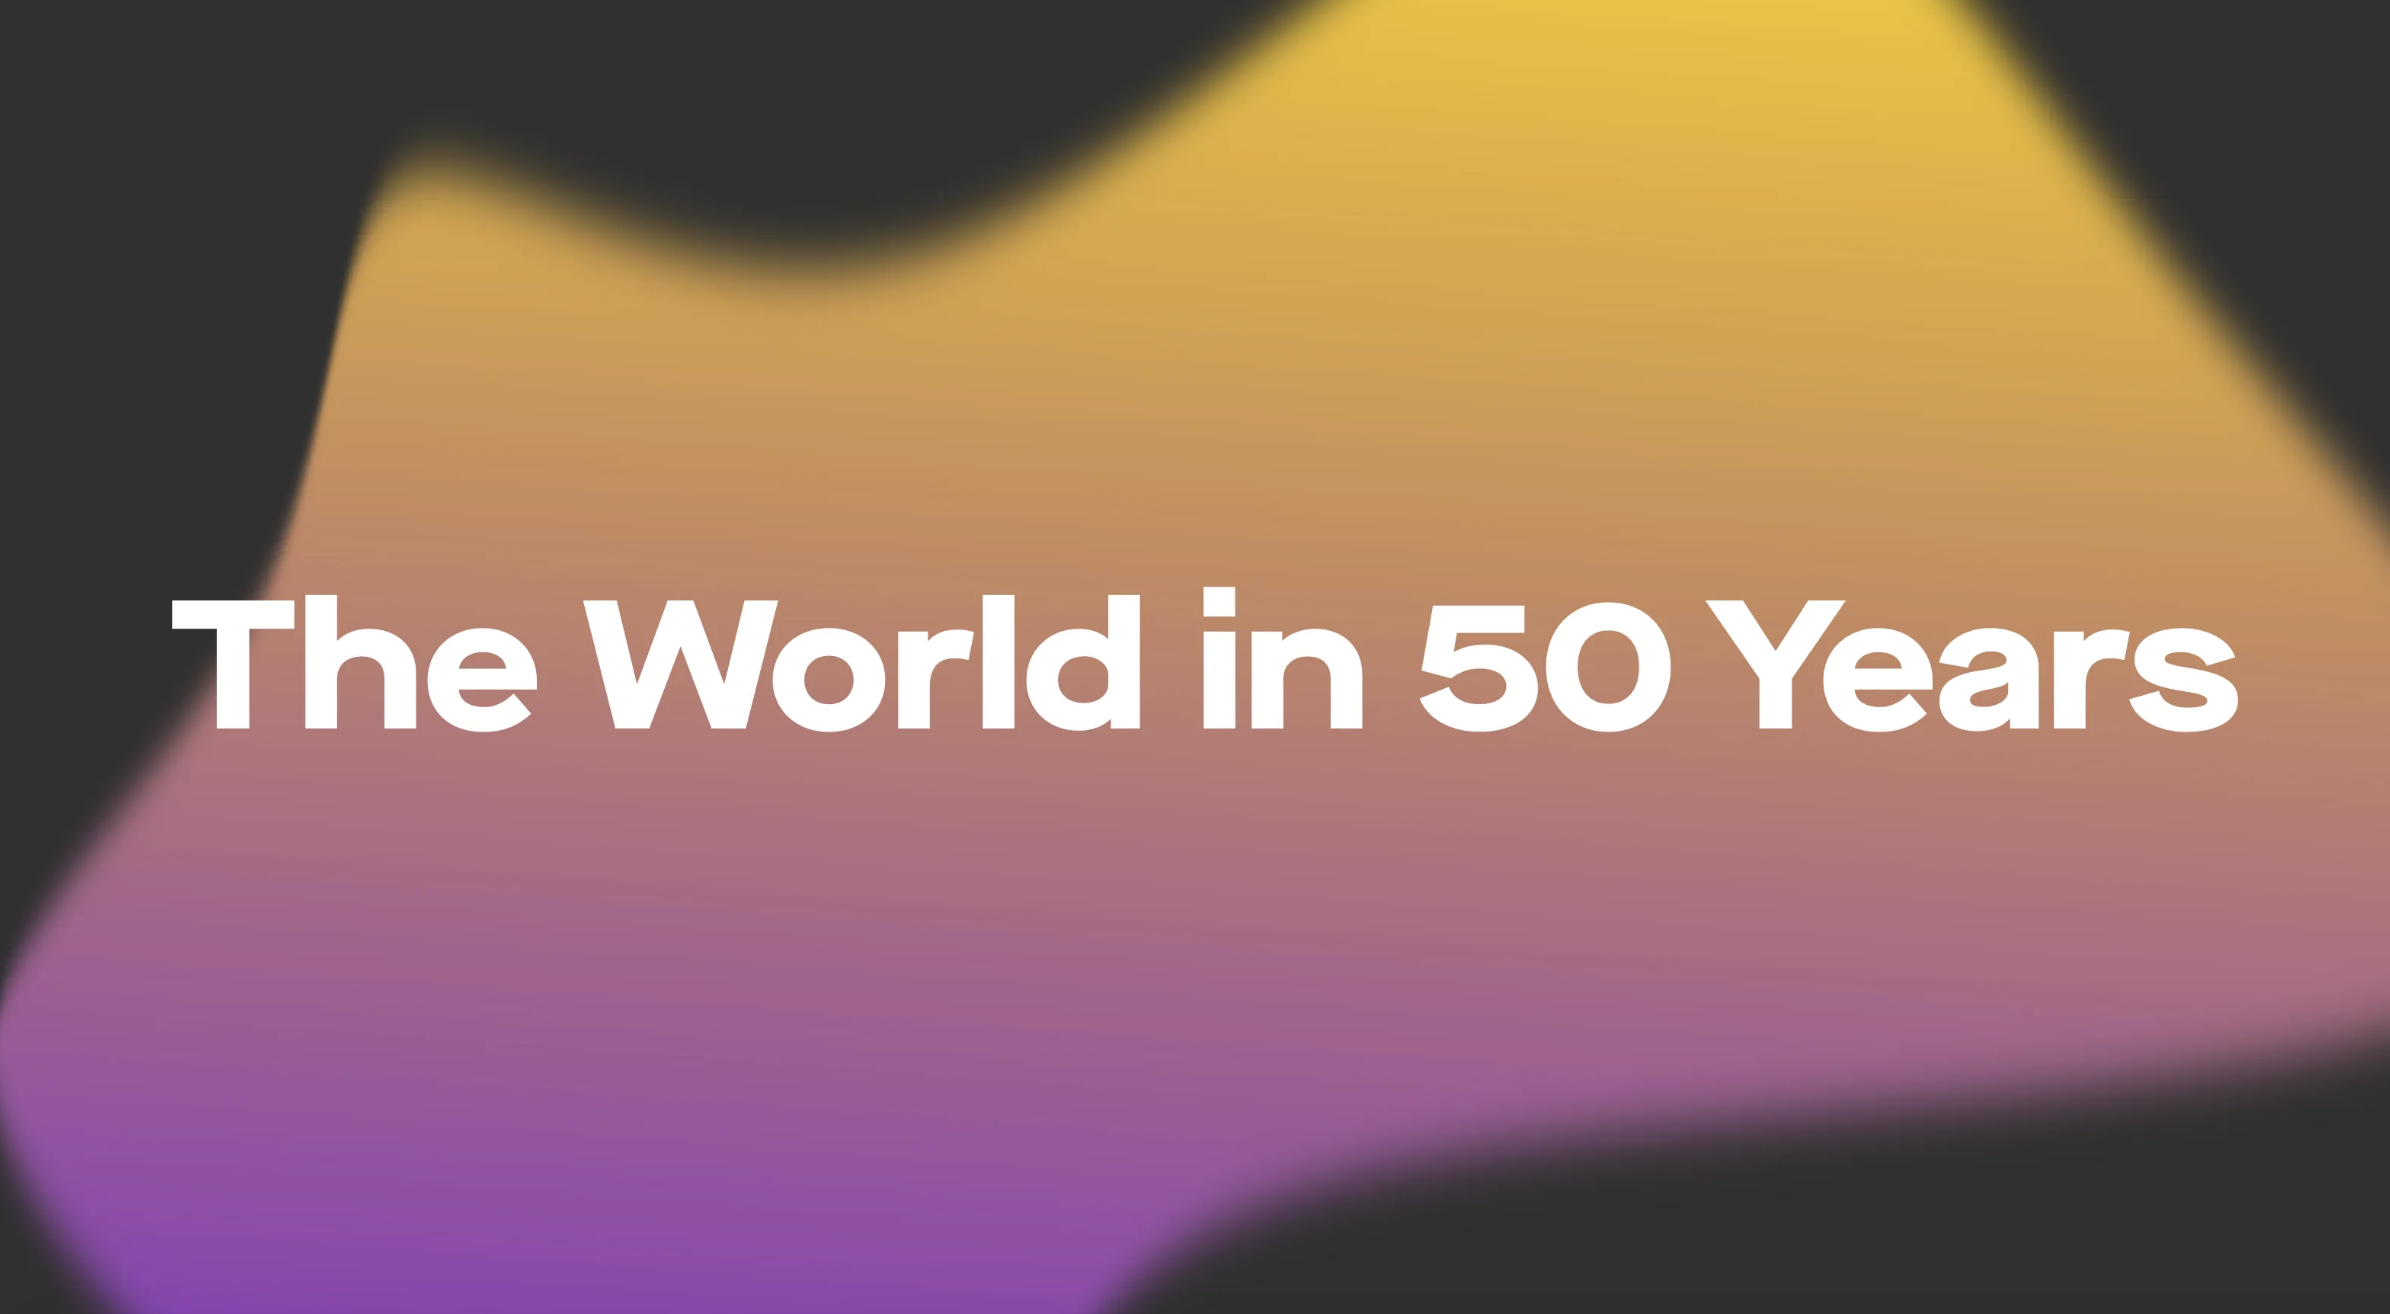 A Portrait Of The World In 50 Years